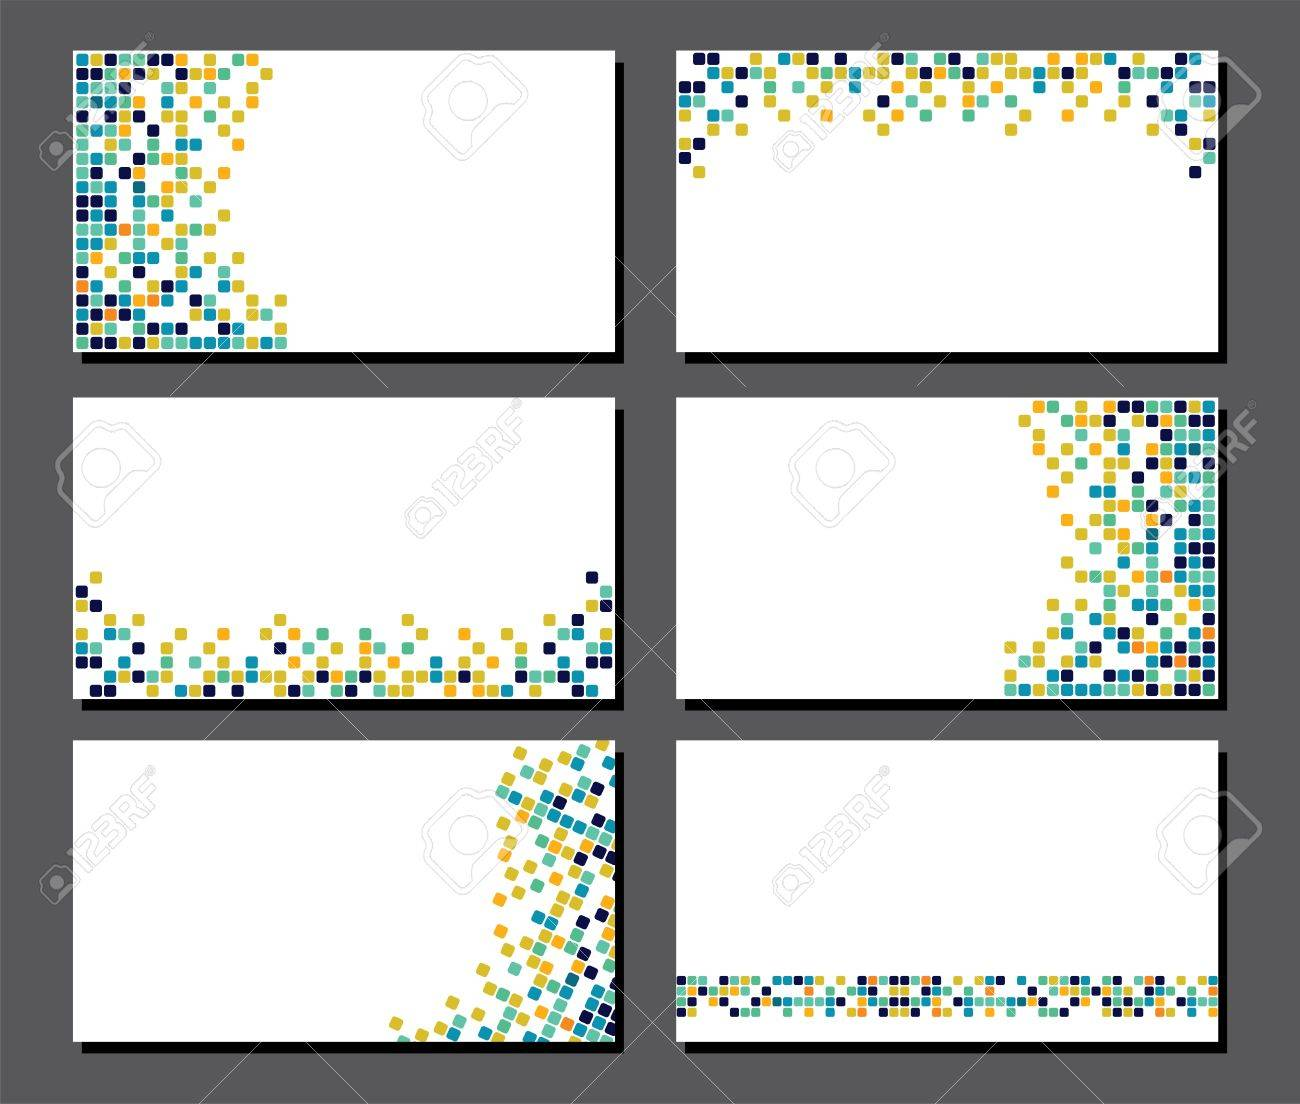 Business card pixels choice image free business cards business card pixels gallery free business cards business card pixels ernestoburgos set of business cards pixel magicingreecefo Image collections